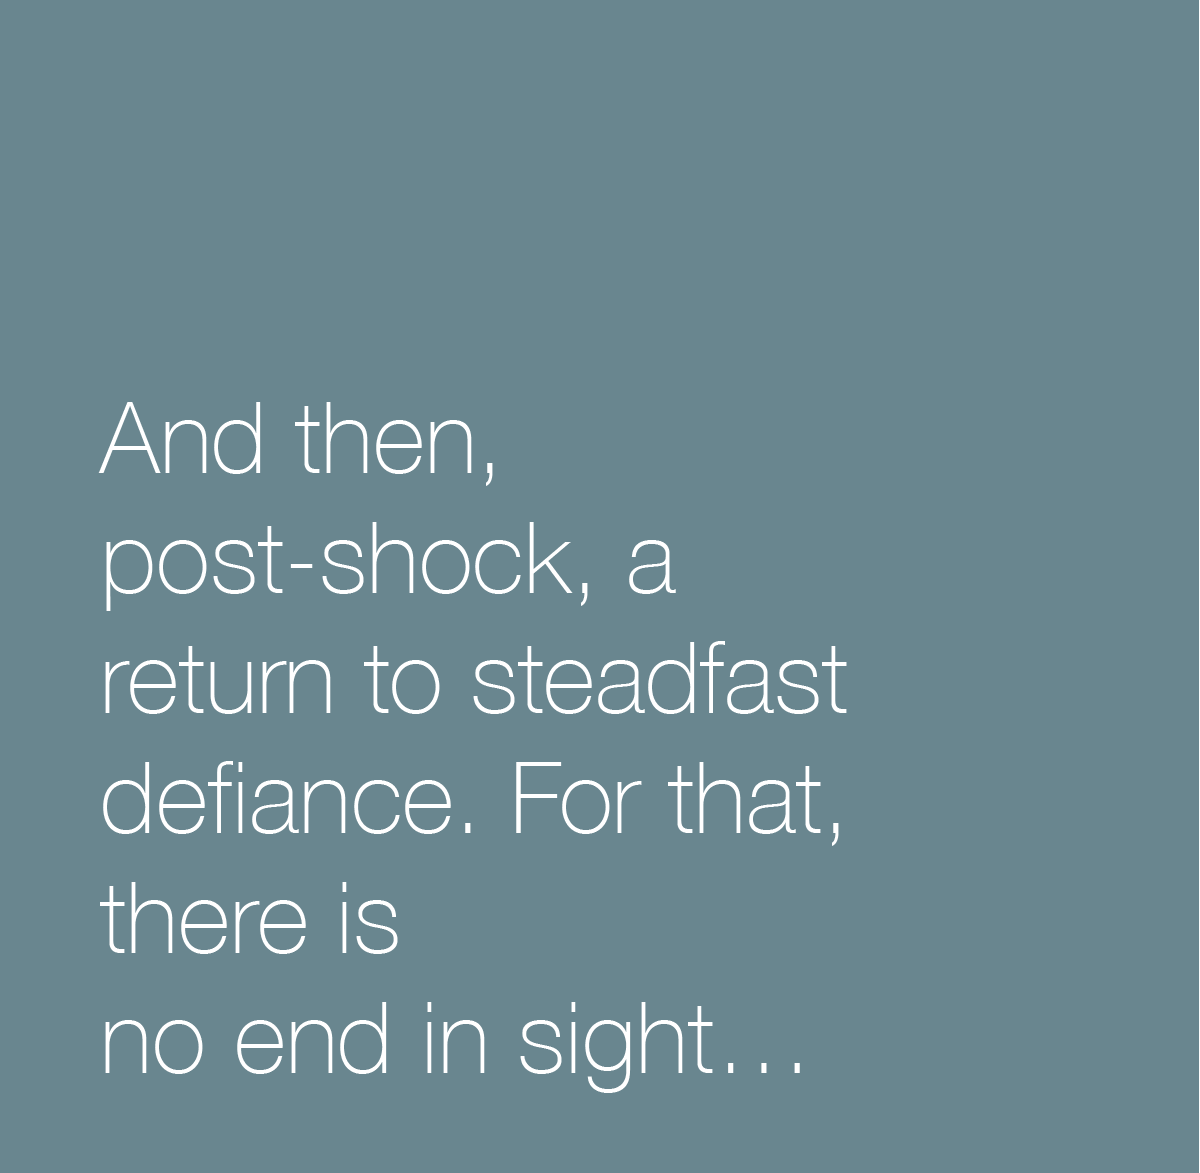 And then post-shock, a return to steadfast defiance. For that, there is no end in sight...